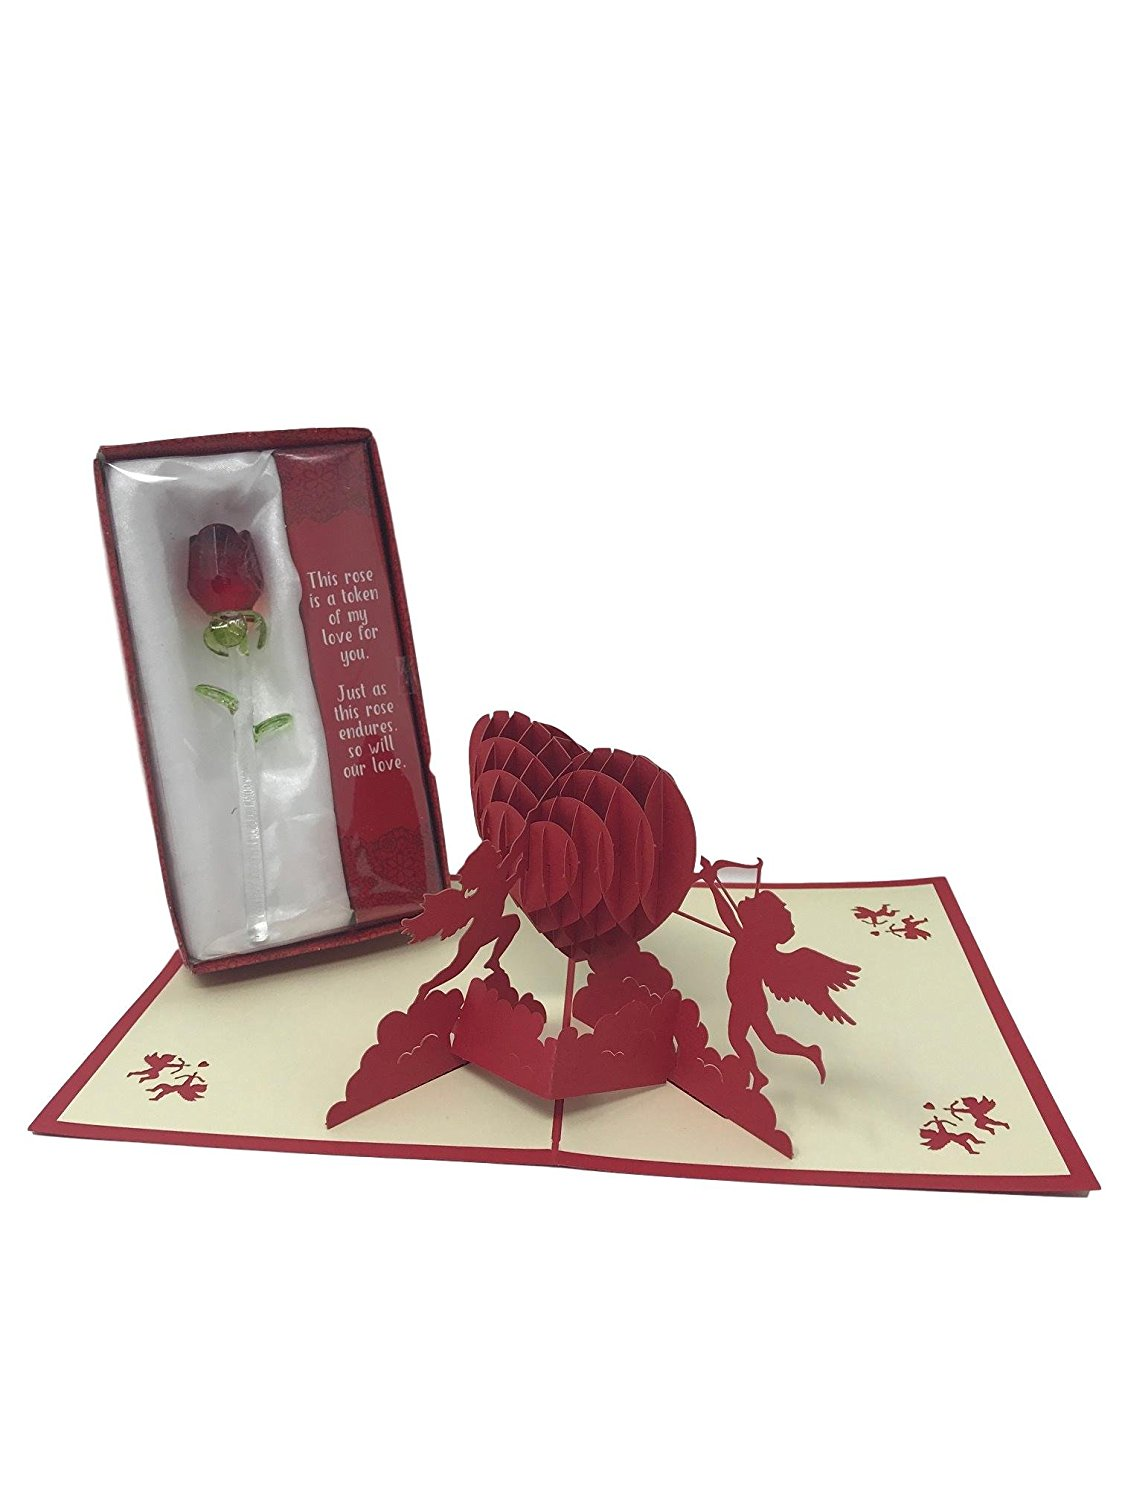 Valentines Day True Love Gift Set | Glass Rose Flower, & Poem | 3D Cupids Valentine Card | Perfect for Husband, Wife, Girlfriend, Boyfriend, Father, Mother, Partner